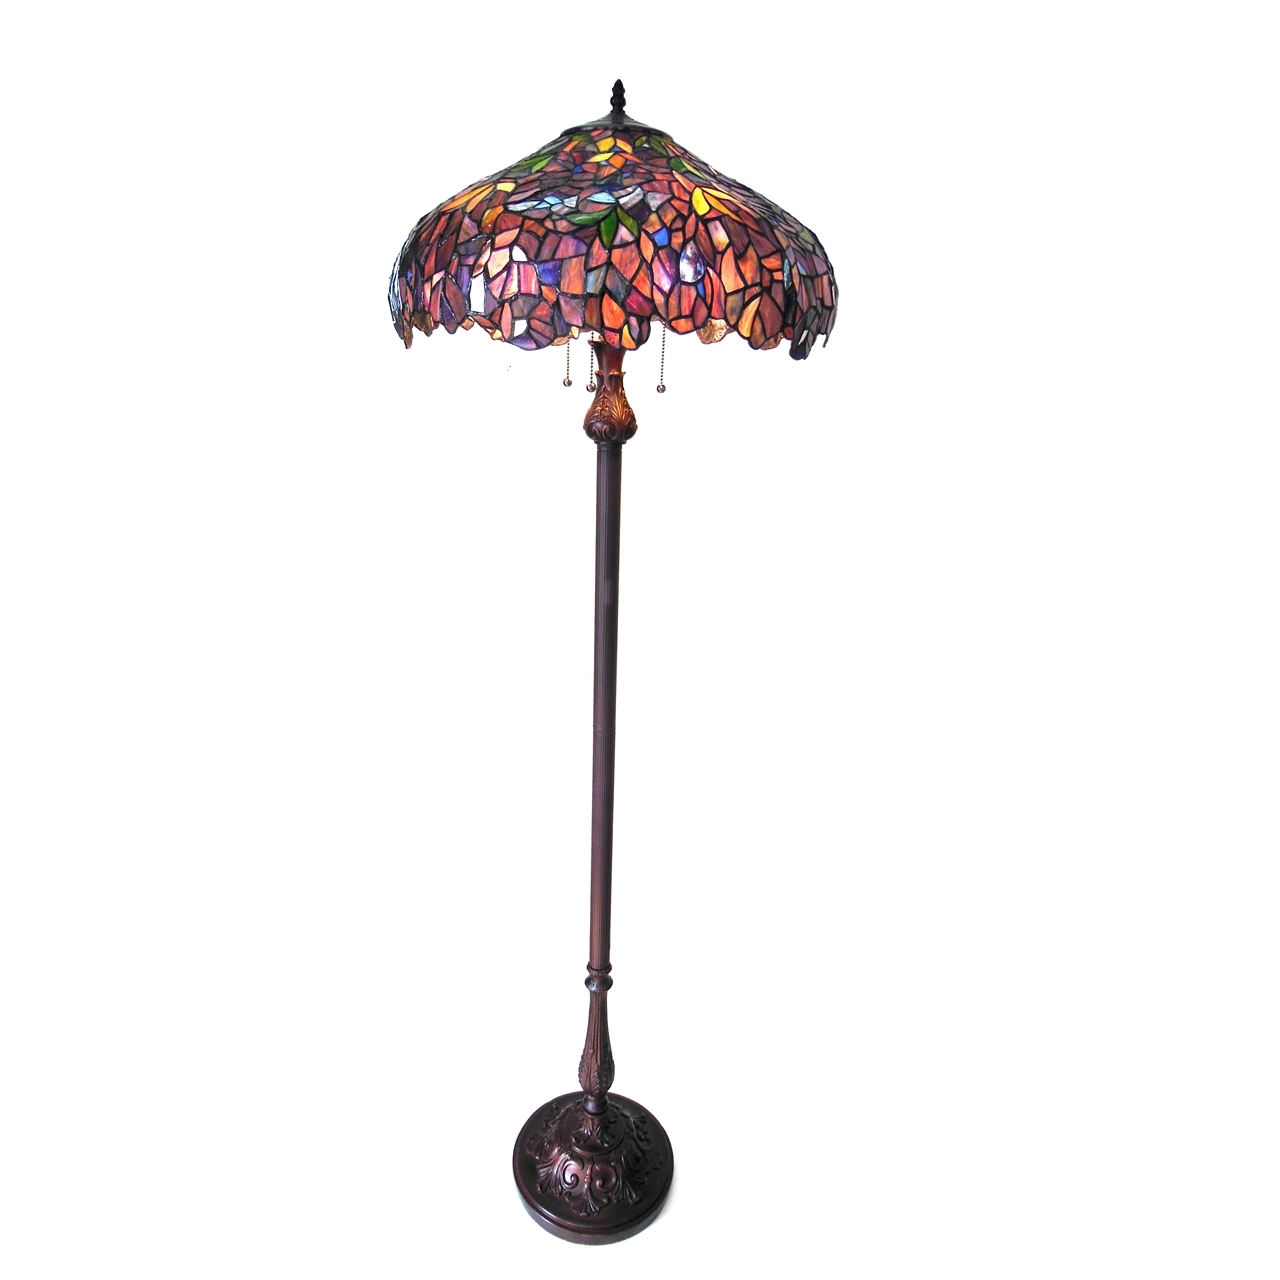 tiffany lamp tiffany lamps tiffany style lamp tiffany style lamps. Black Bedroom Furniture Sets. Home Design Ideas